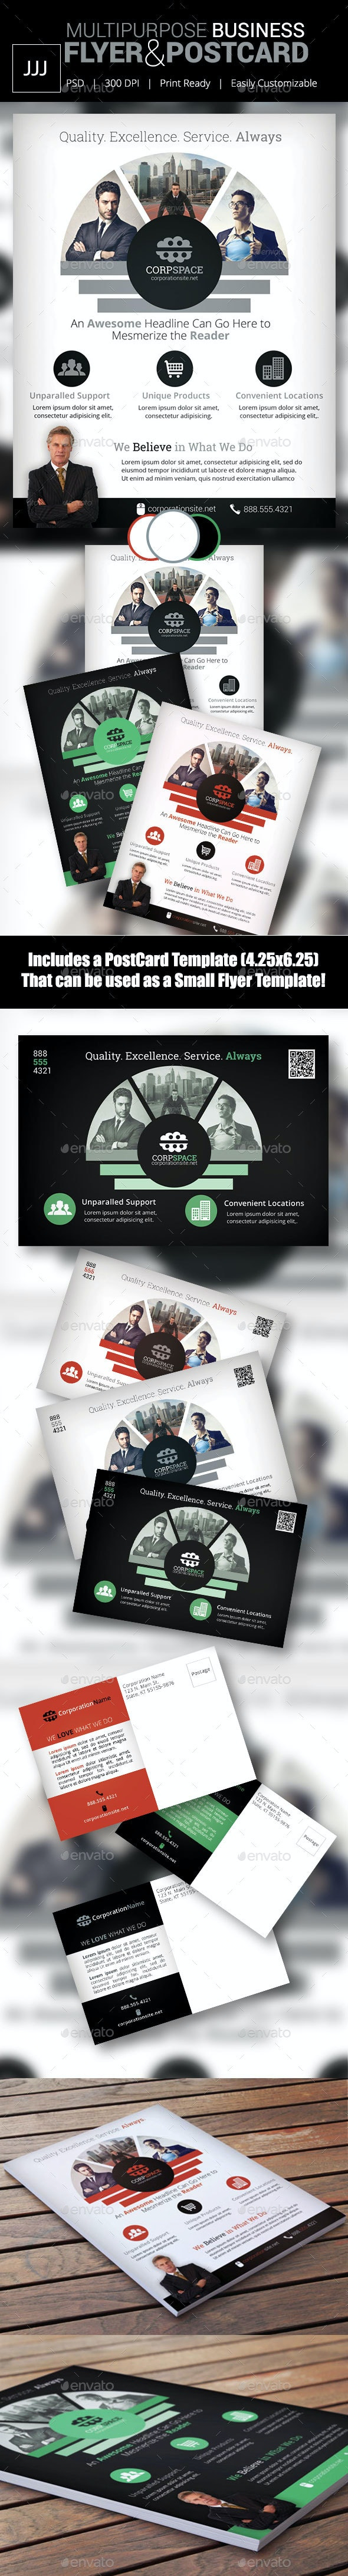 Business Flyer 45 with Postcard Template - Corporate Flyers